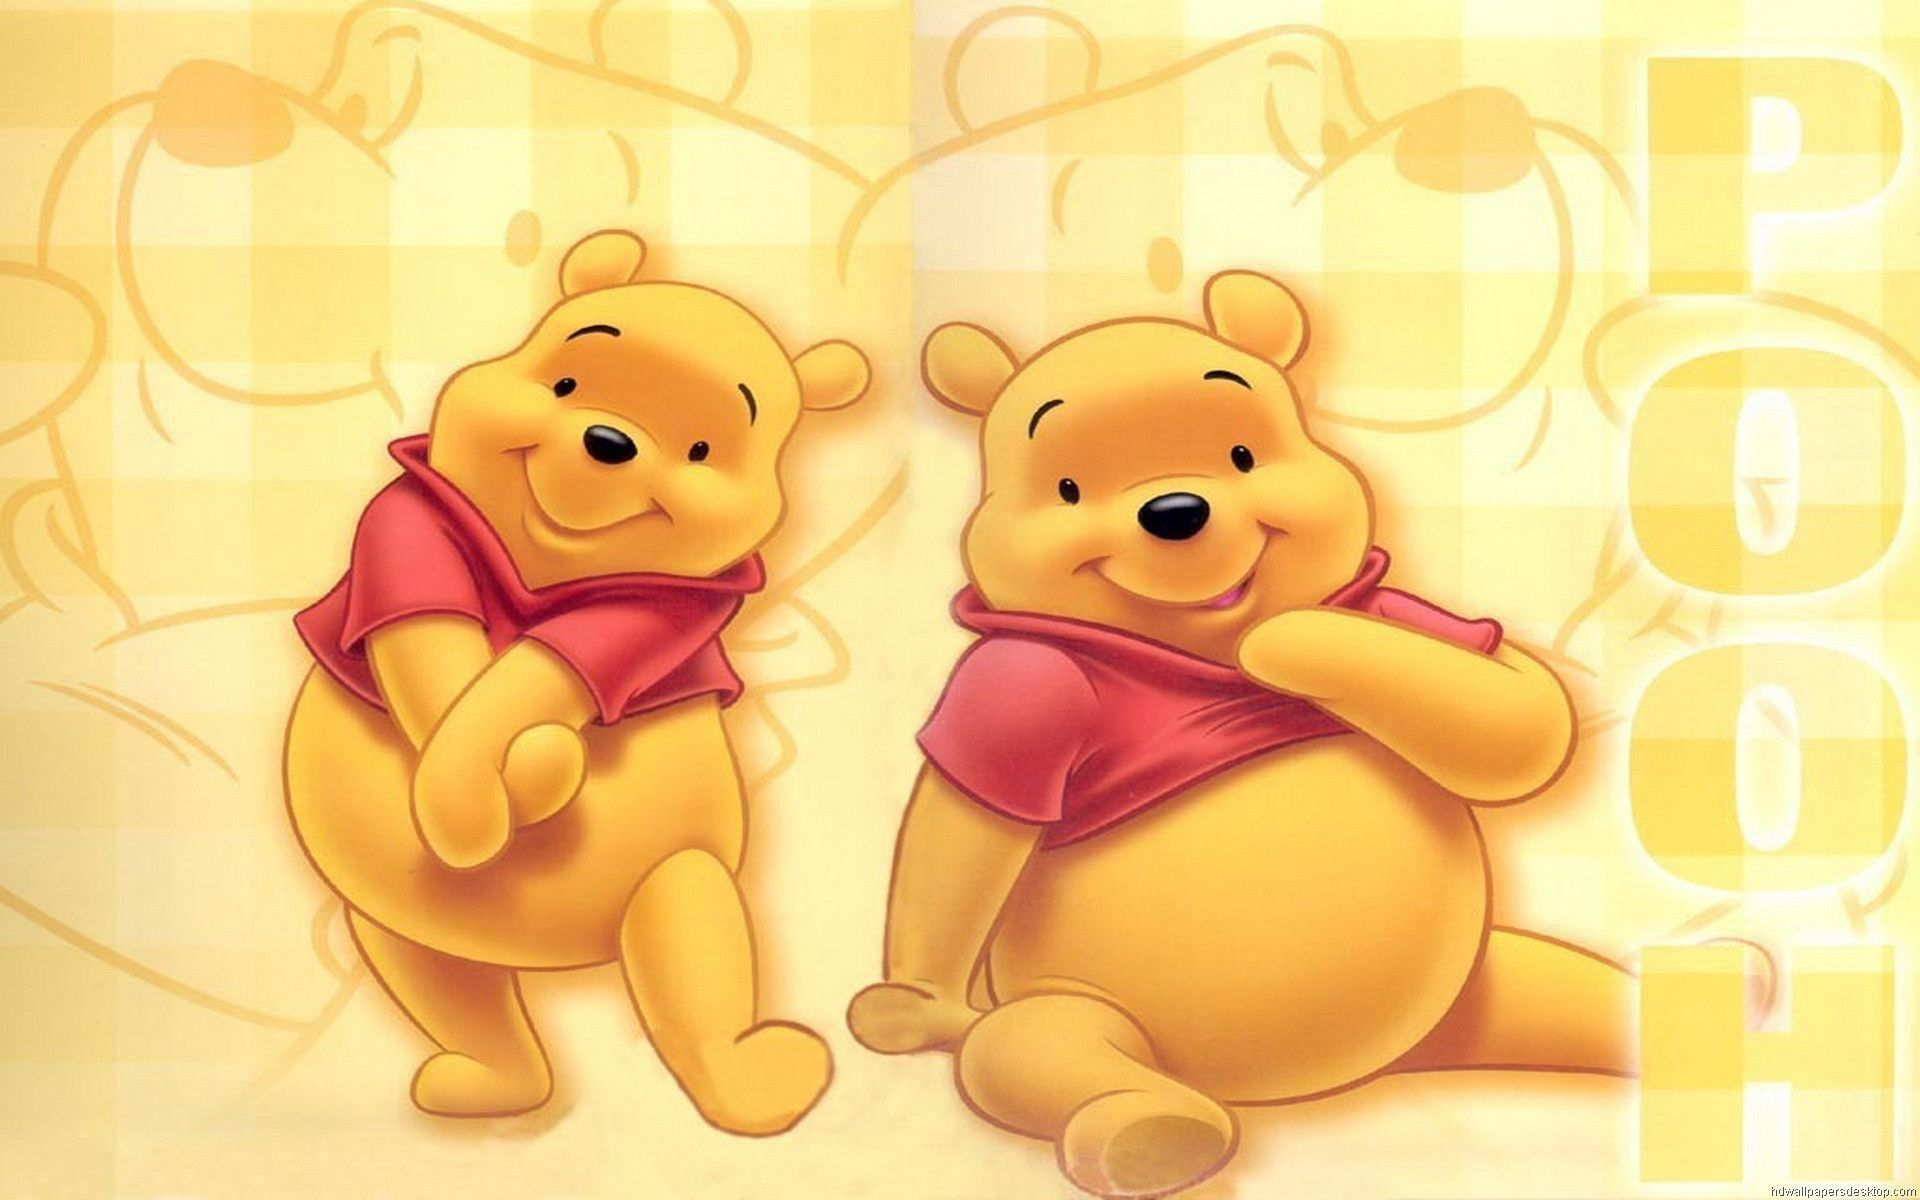 Wallpaper winnie the pooh baby impremedia baby pooh images pooh bear wallpaper hd wallpaper and background 1920x1200 voltagebd Gallery